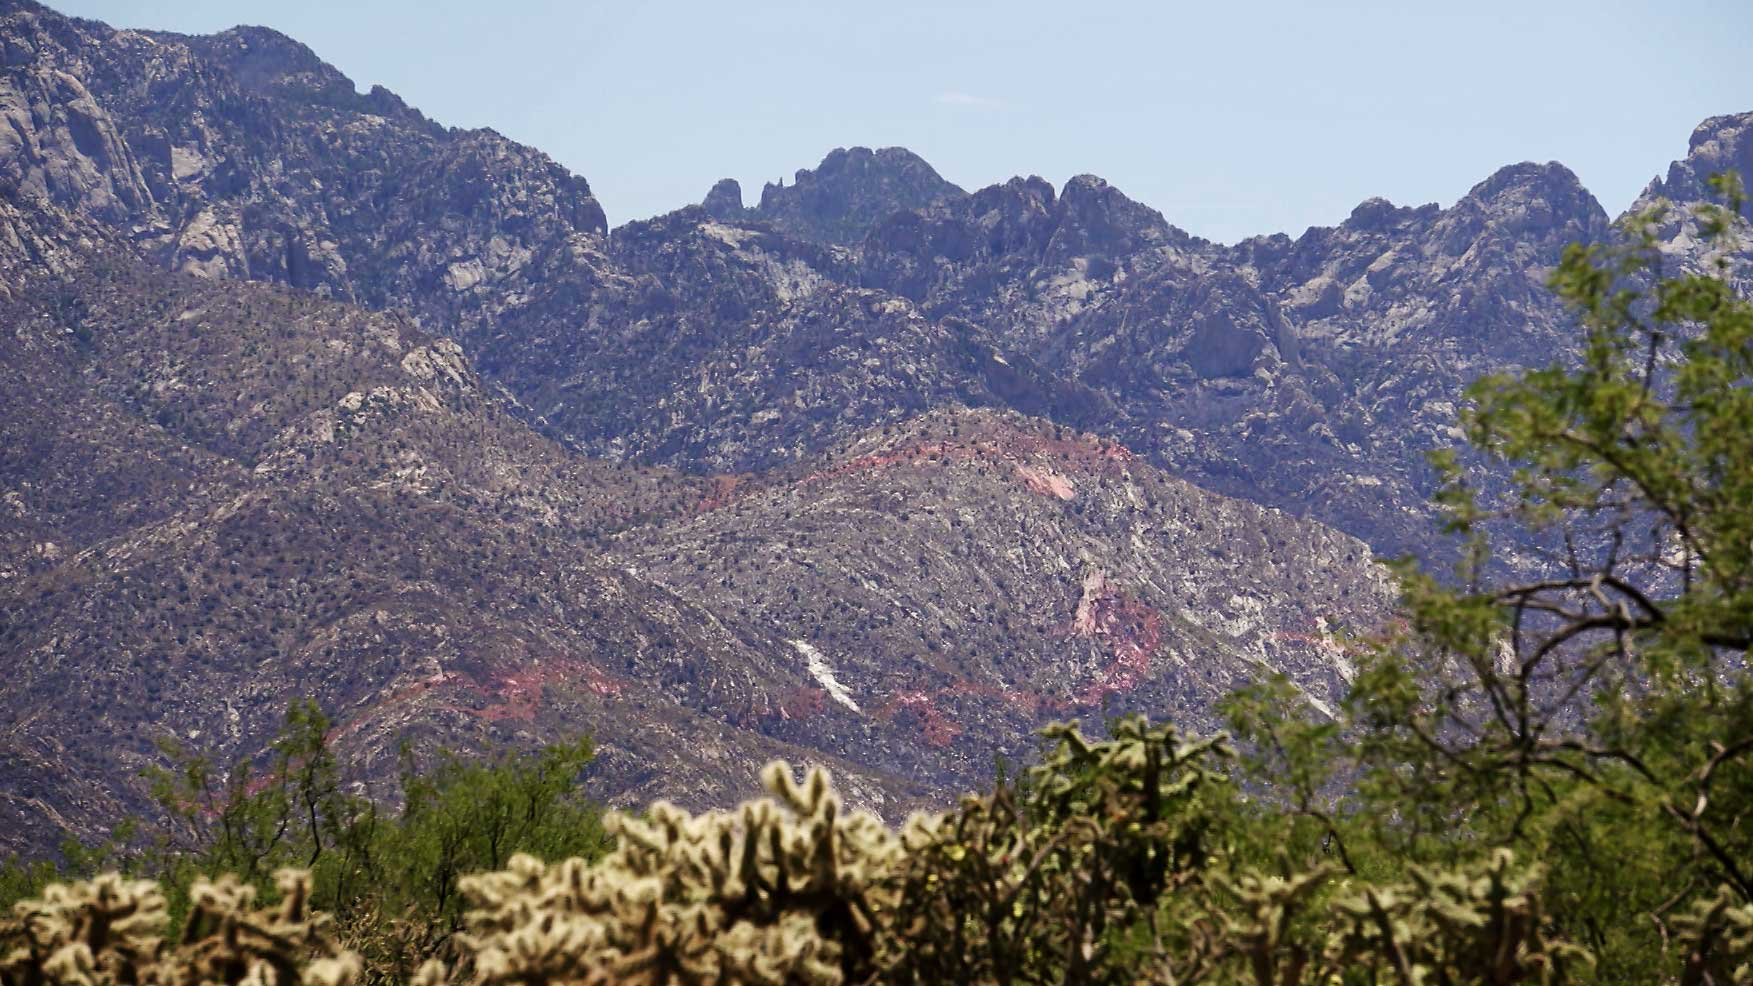 Red fire retardant is visible on parts of the Santa Catalina Mountains as a result of firefighting efforts against the Bighorn Fire. June 2020.